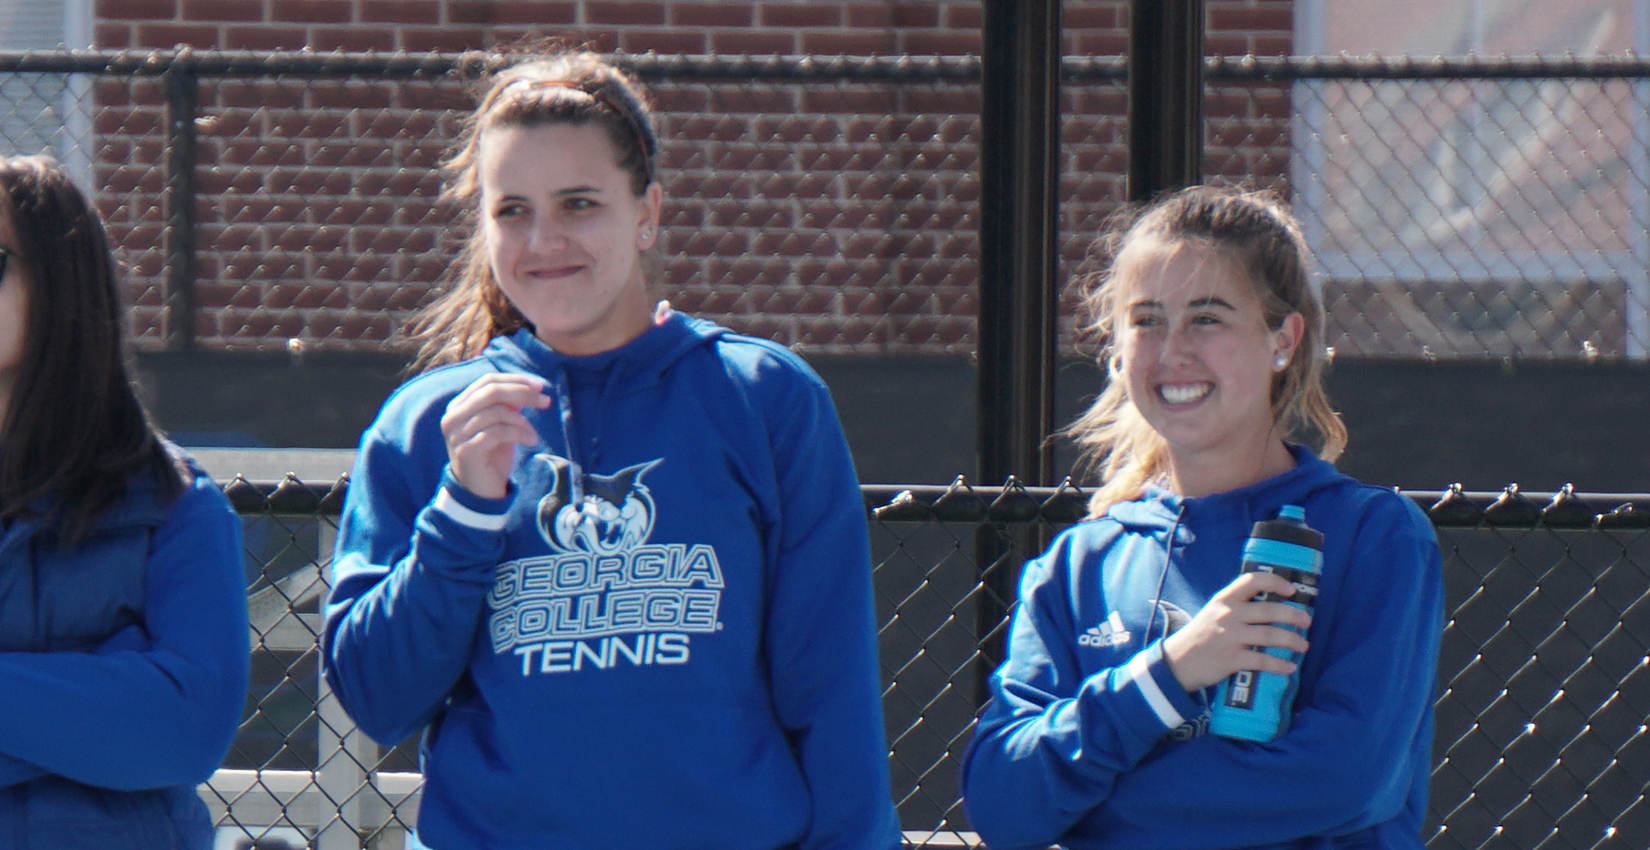 Lopez, Fleming named to All-Conference Tennis Teams